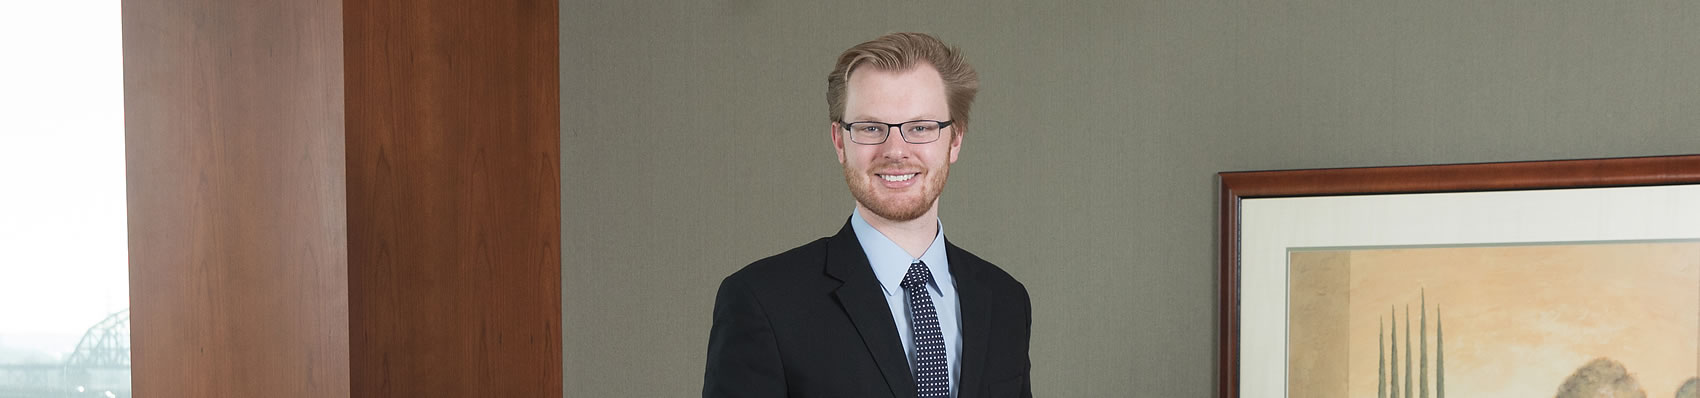 Michael Donnell, Associate with Pitzer Snodgrass, P.C.